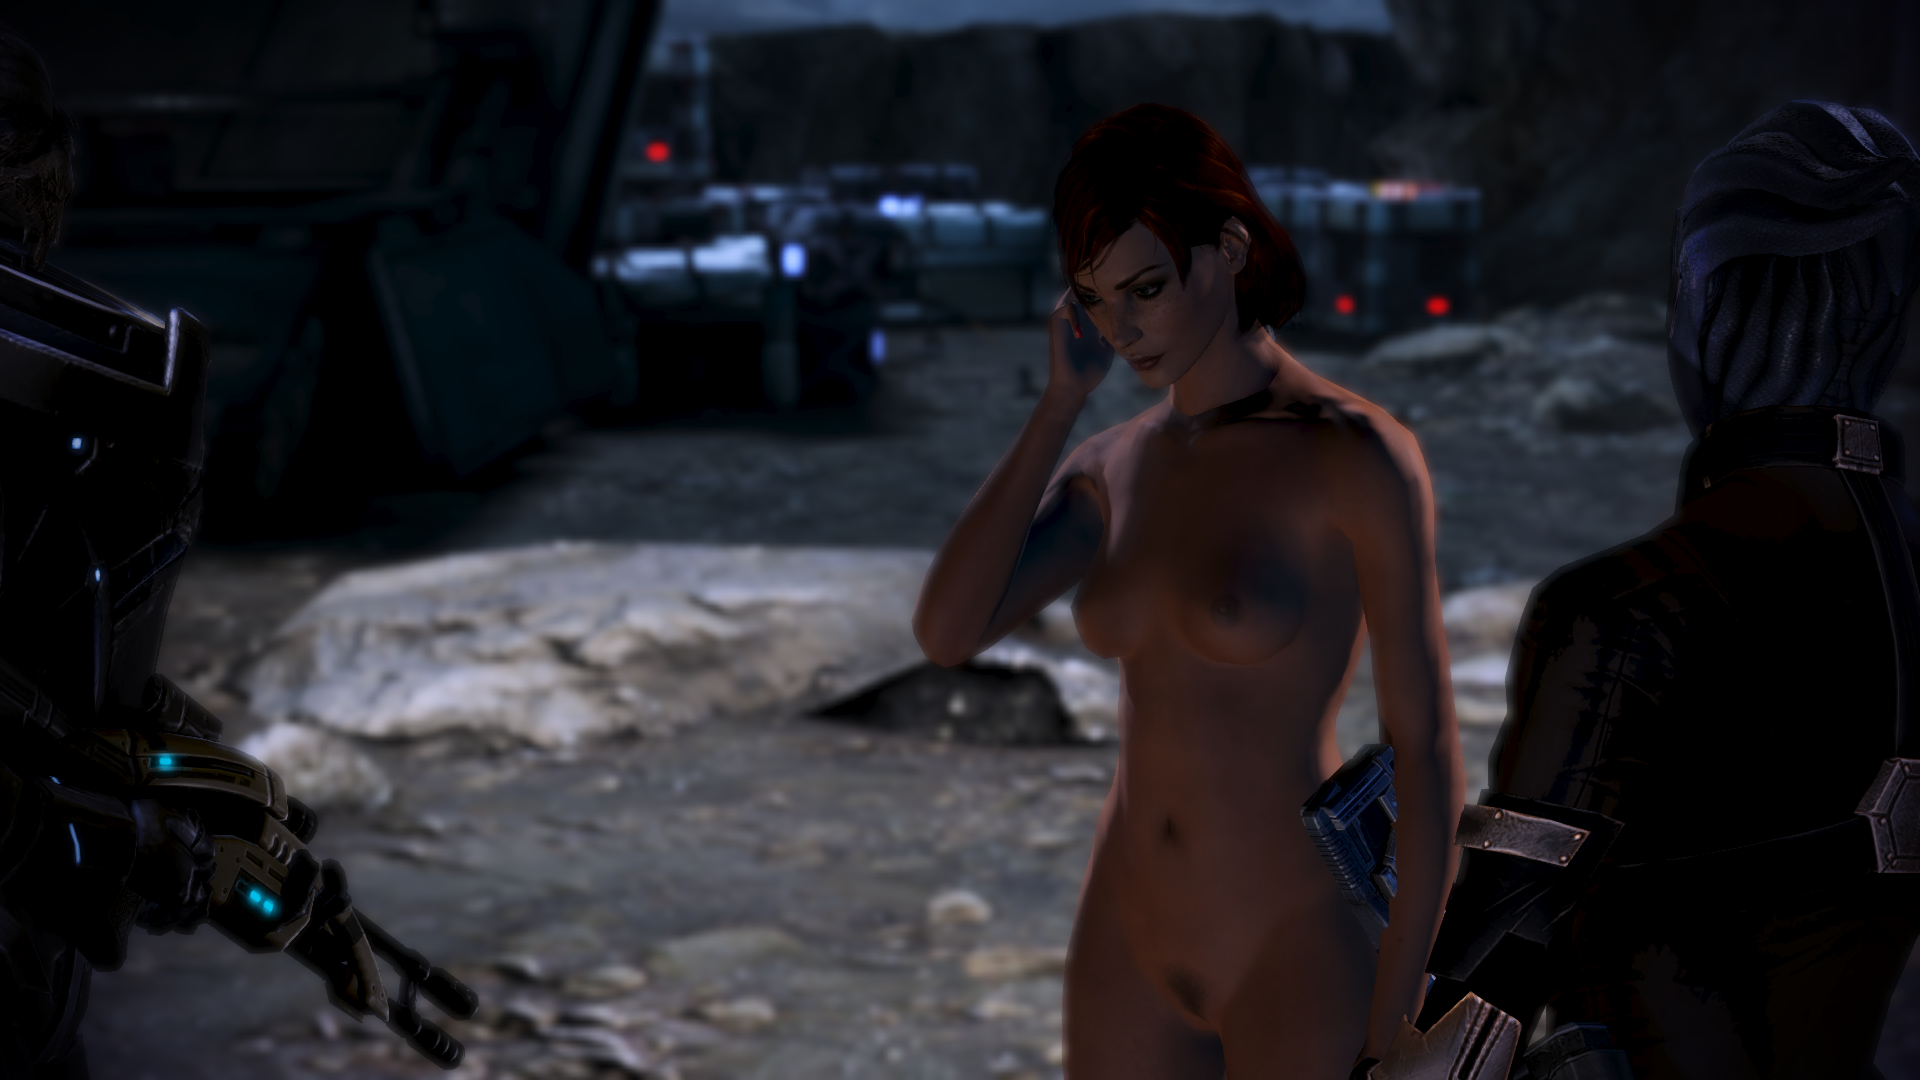 Mass effect 3 nude patch video adult photo